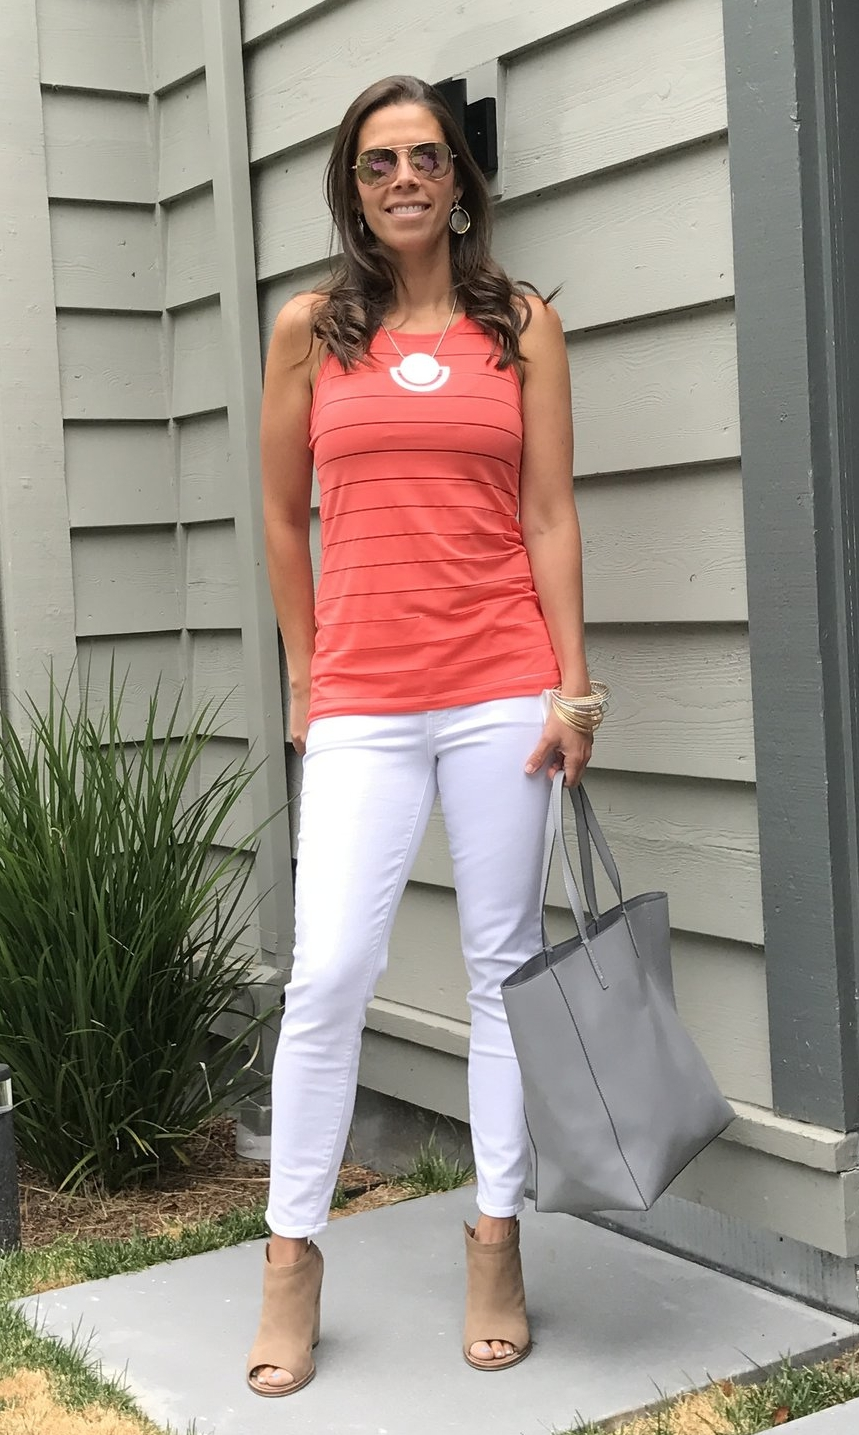 6ea7292fac Today I'm wearing the Athleta Stripe Mesh High Neck Chi Tank in the color  coral with white J Brand Capri skinny jeans. This tank also comes in a  handful of ...